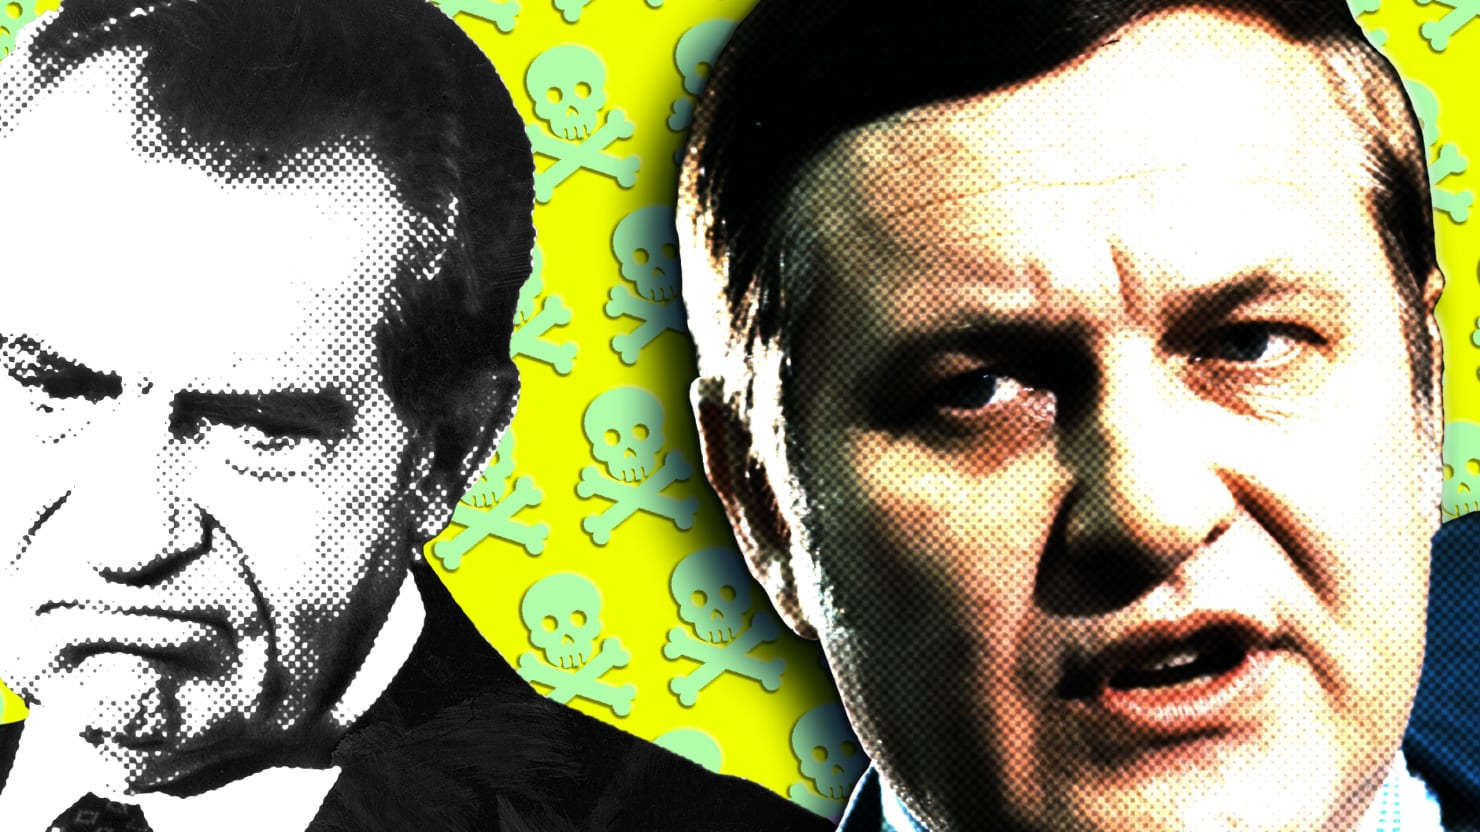 When Nixon's Henchmen Plotted to Assassinate a Journalist with LSD